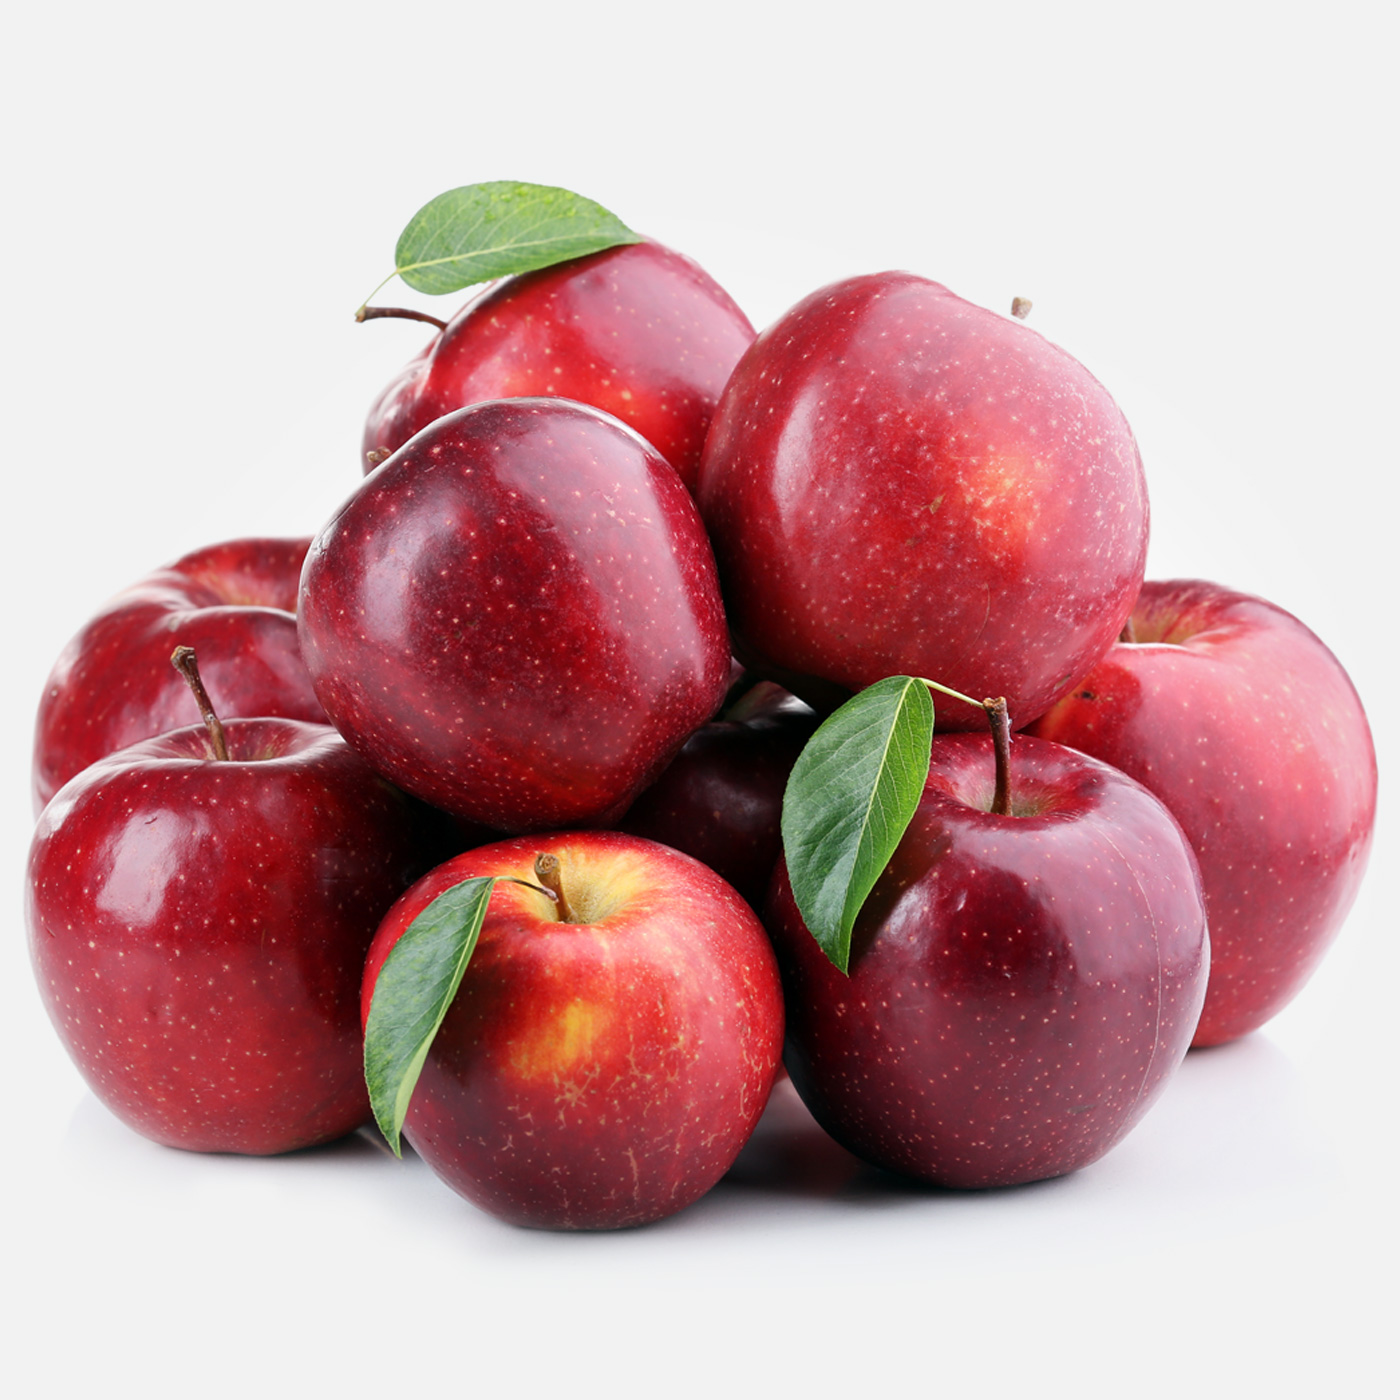 Using apples, unlock the possibilities for flavours, aromas and sweeteners in animal feed and pet food production